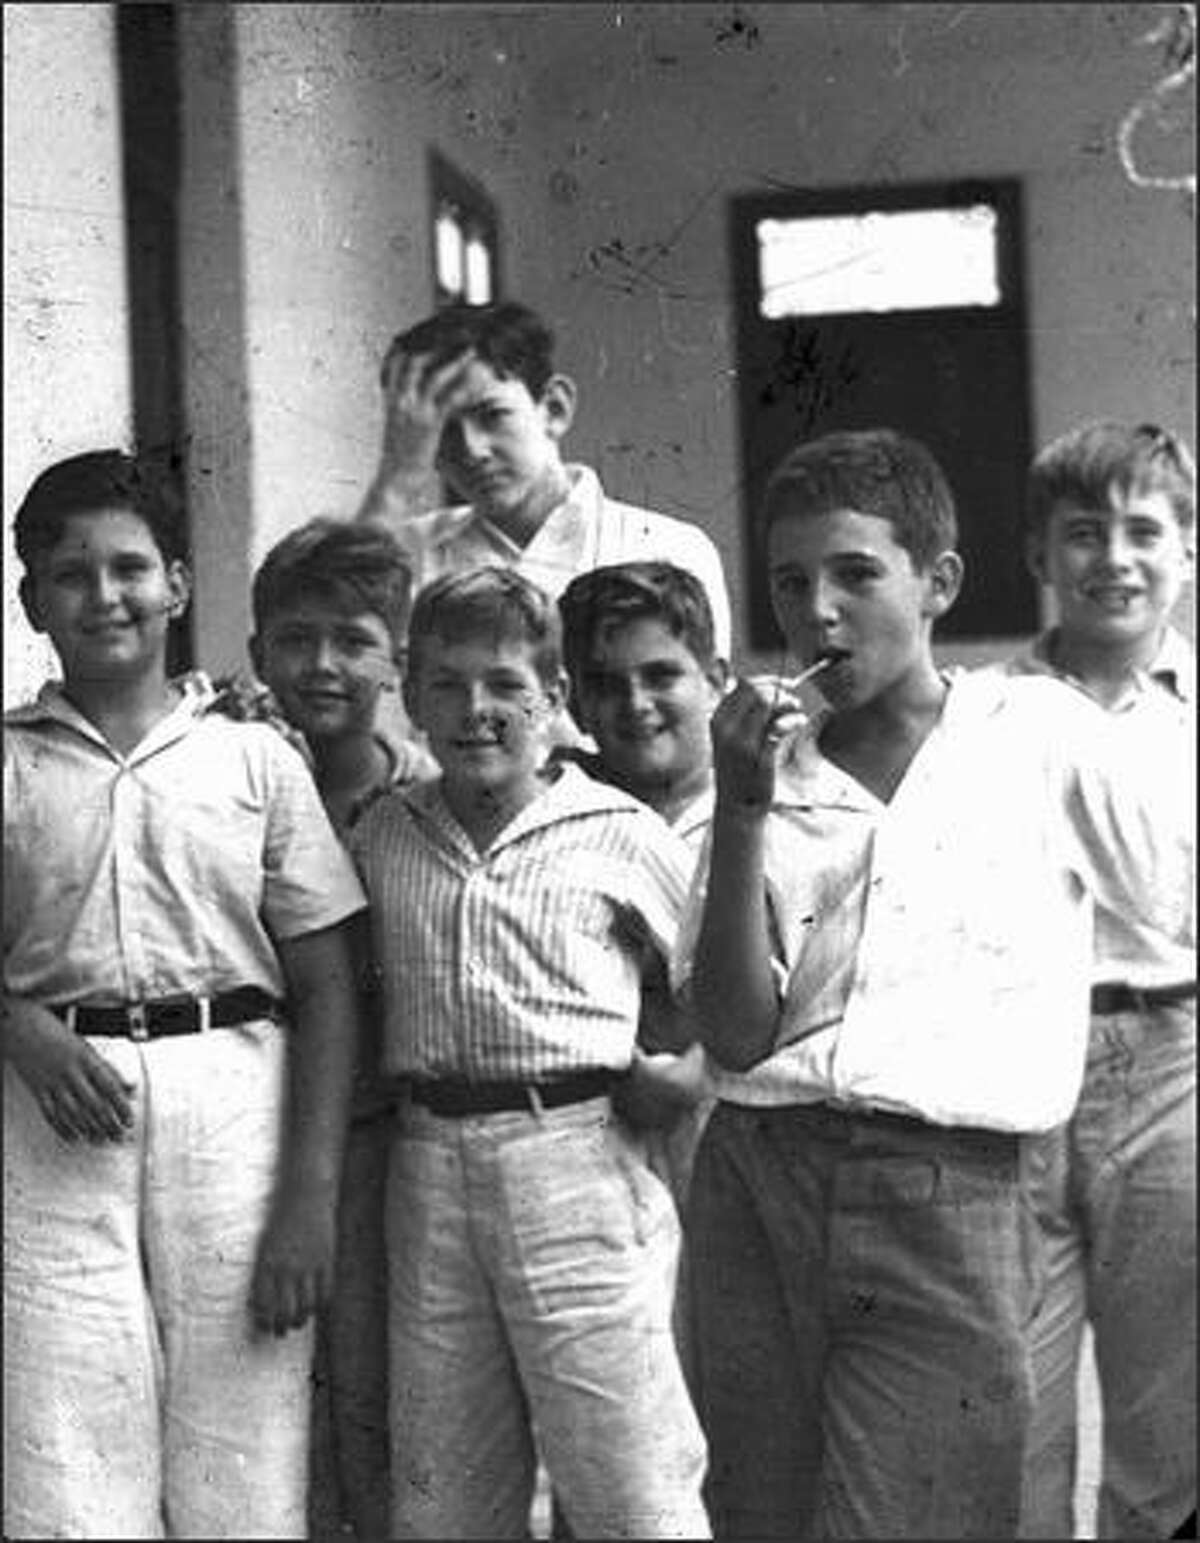 Fidel Castro, right, eats a lollipop in a 1940 photo taken of him and schoolmates when he was studying at the school Nuestra Senora de Dolores in Santiago de Cuba. The photo was taken by Spanish Jesuit Jose Maria Patac. JOSE MARIA PATAC/AFP/Getty Images